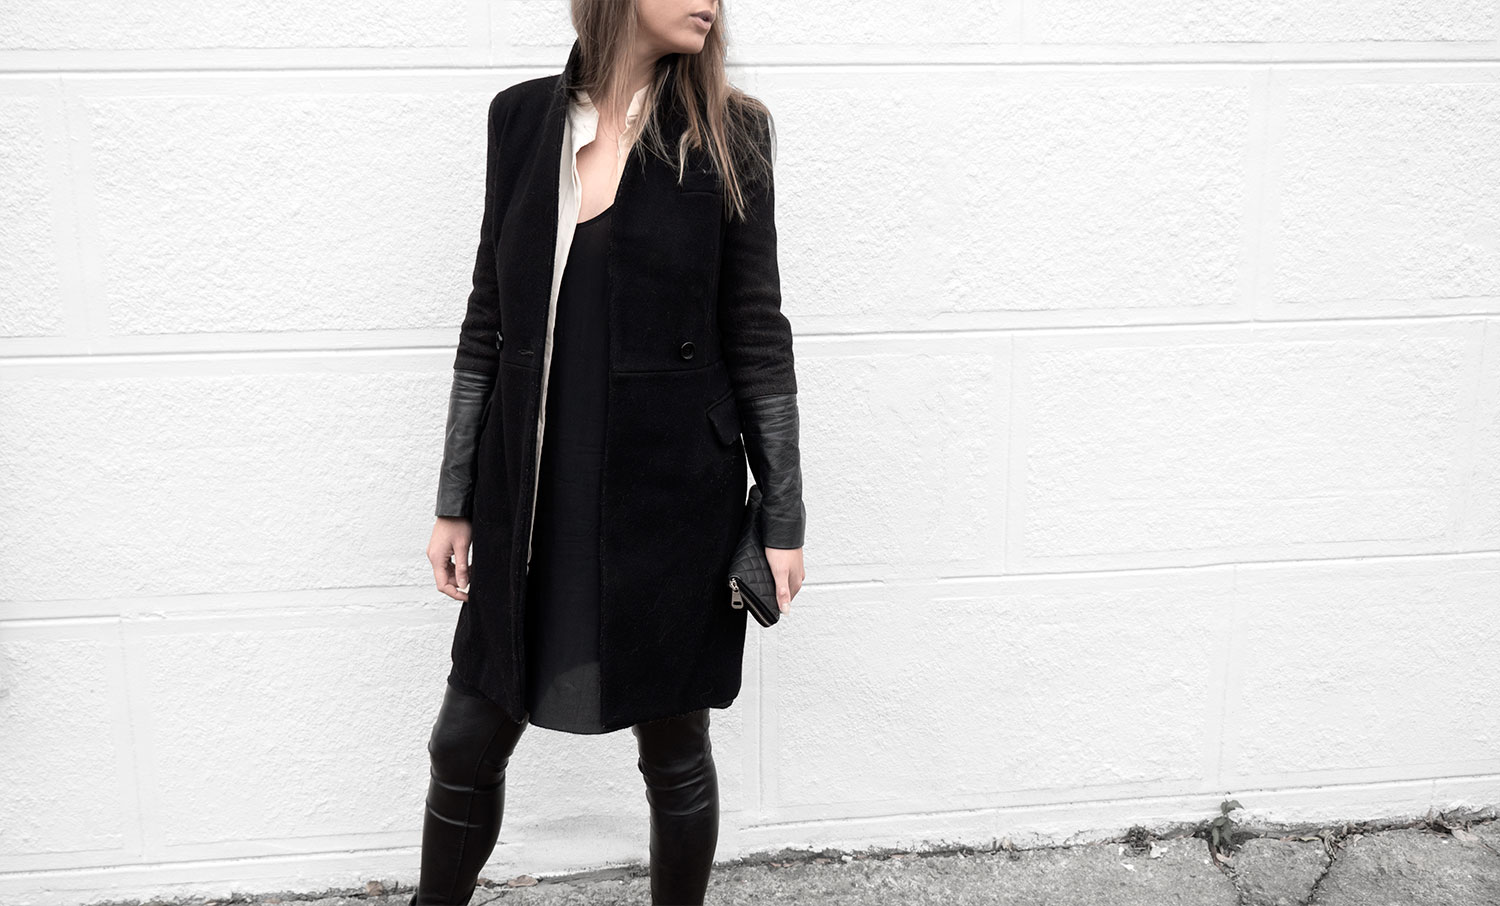 Lines-Manner-Timeless-Comfort-Essentials-Monochrome-Trend-Minimal-Textures-Fall-Leather-Details-Simplicity-Modern-Basics-Outfit-Structure-Relaxed-Leather-Luxurious-Sophistication-4